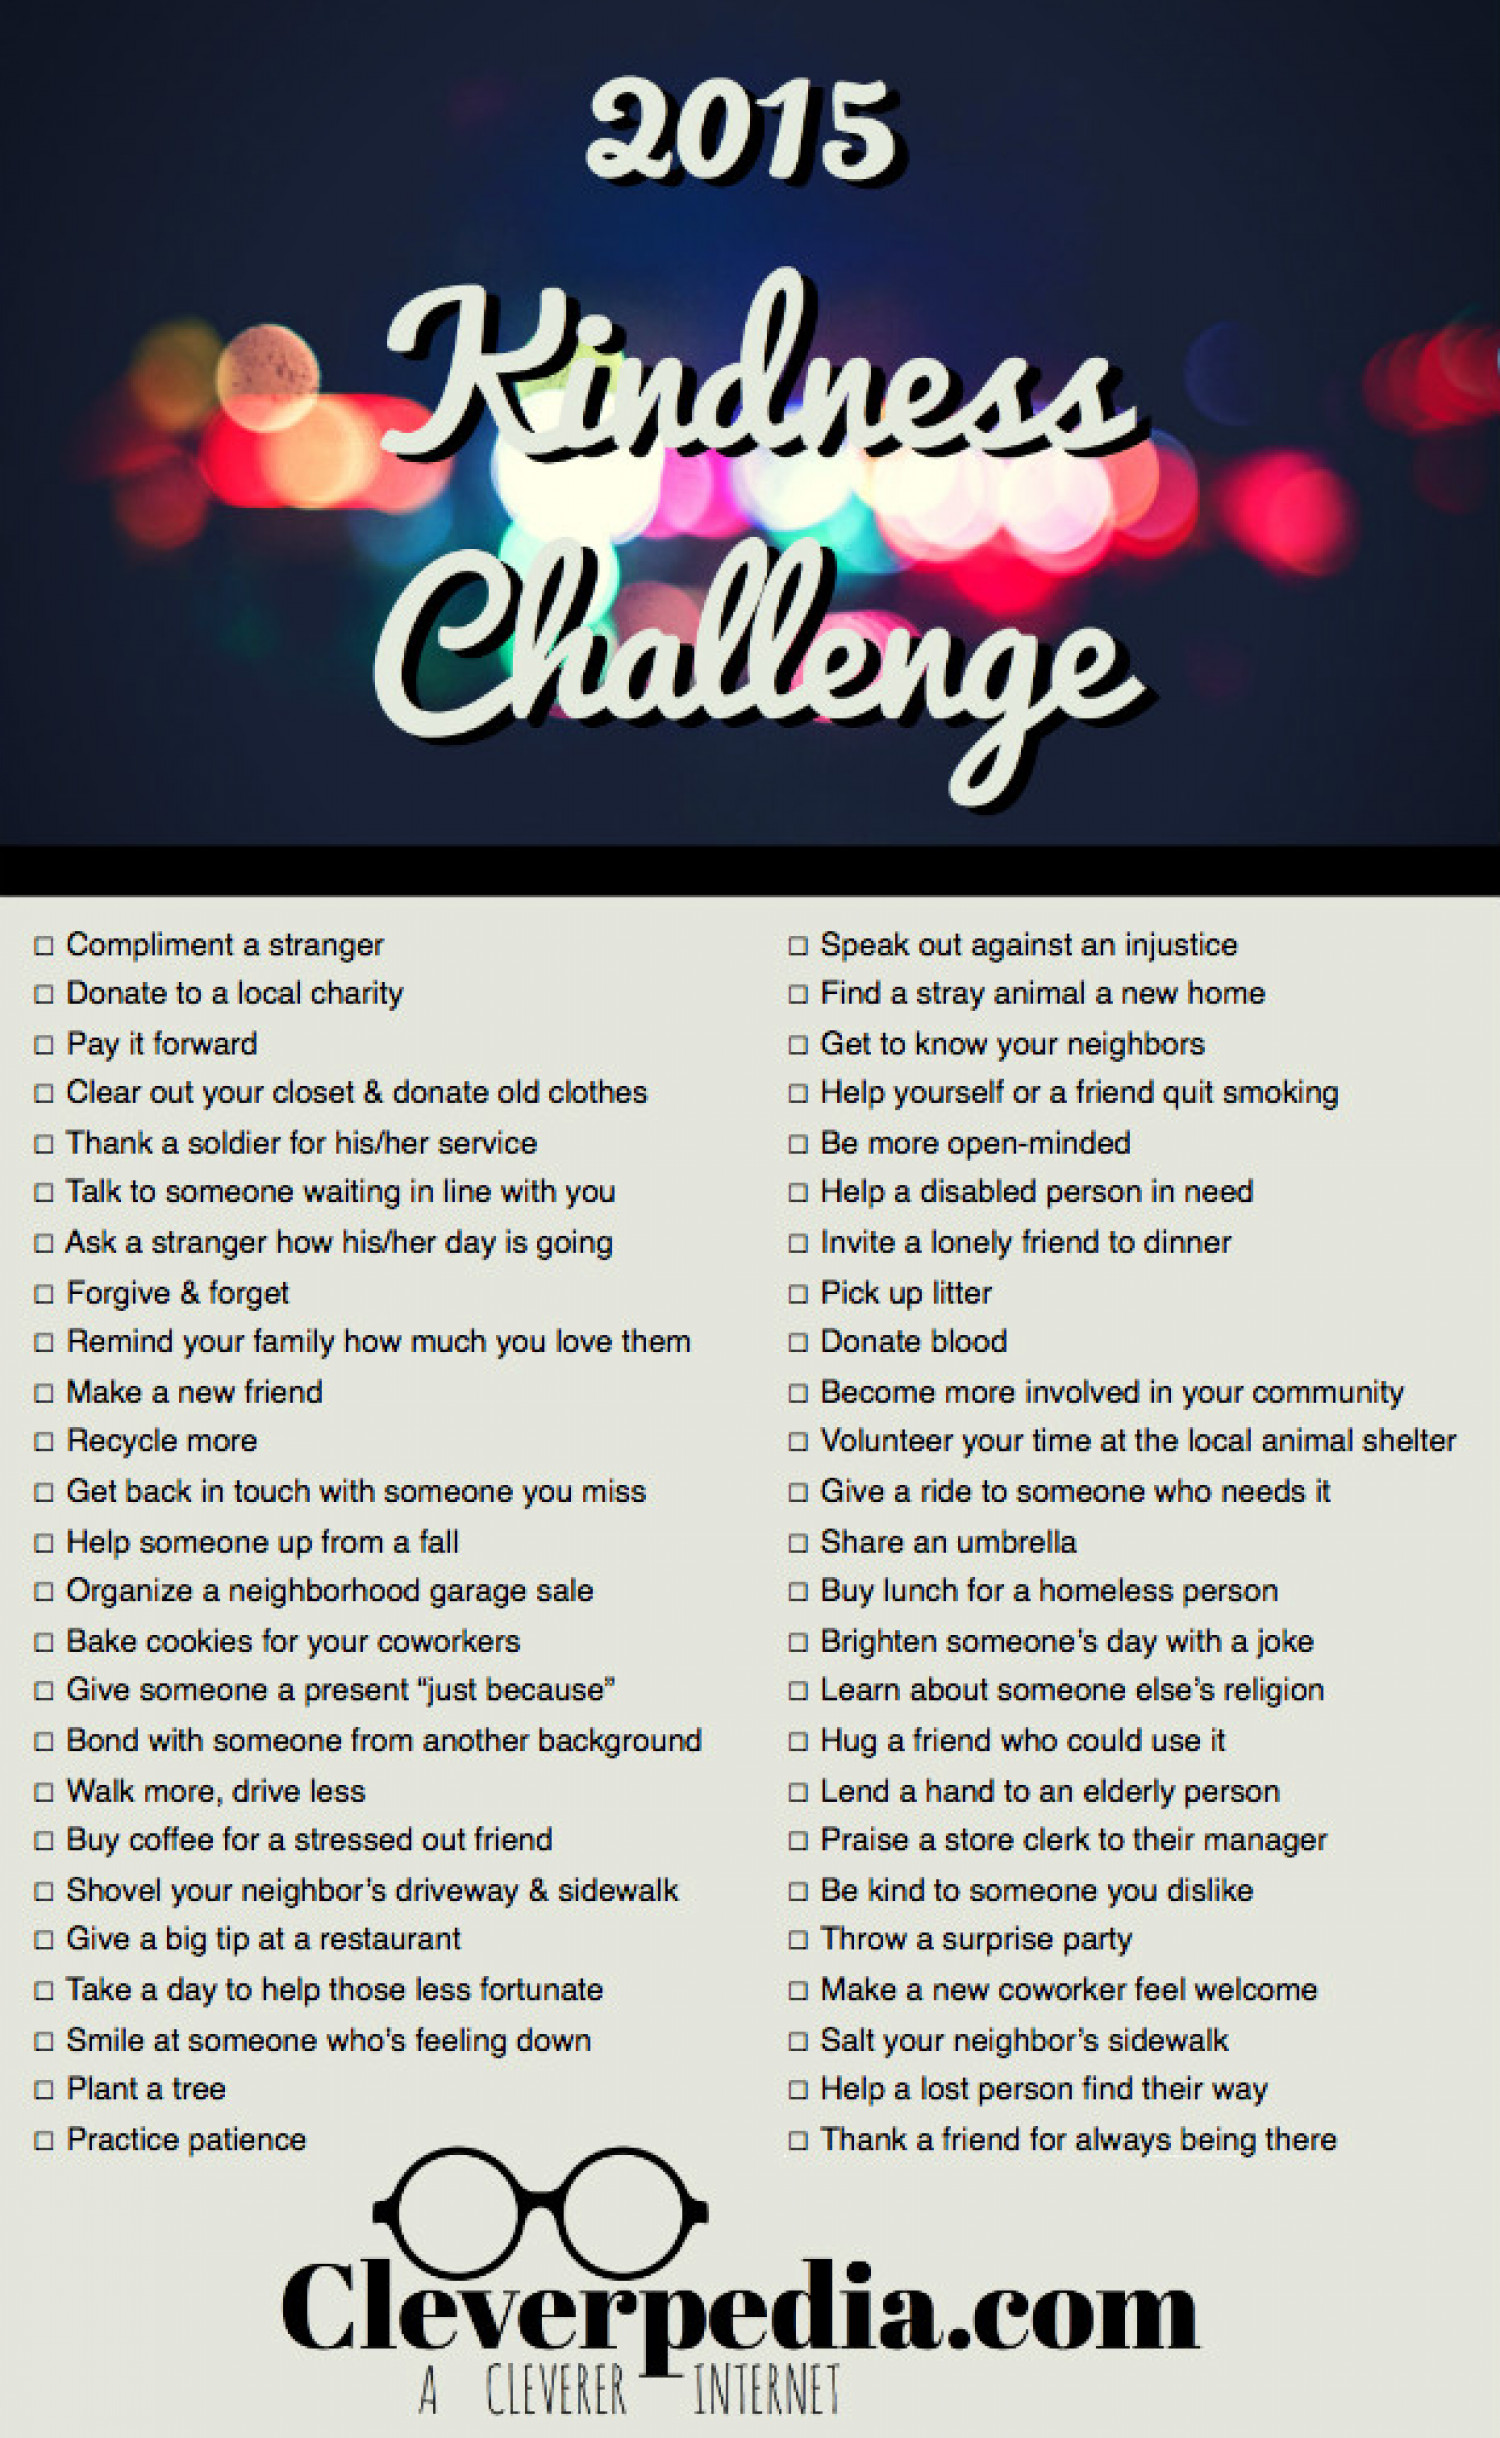 The 2015 Kindness Challenge Infographic